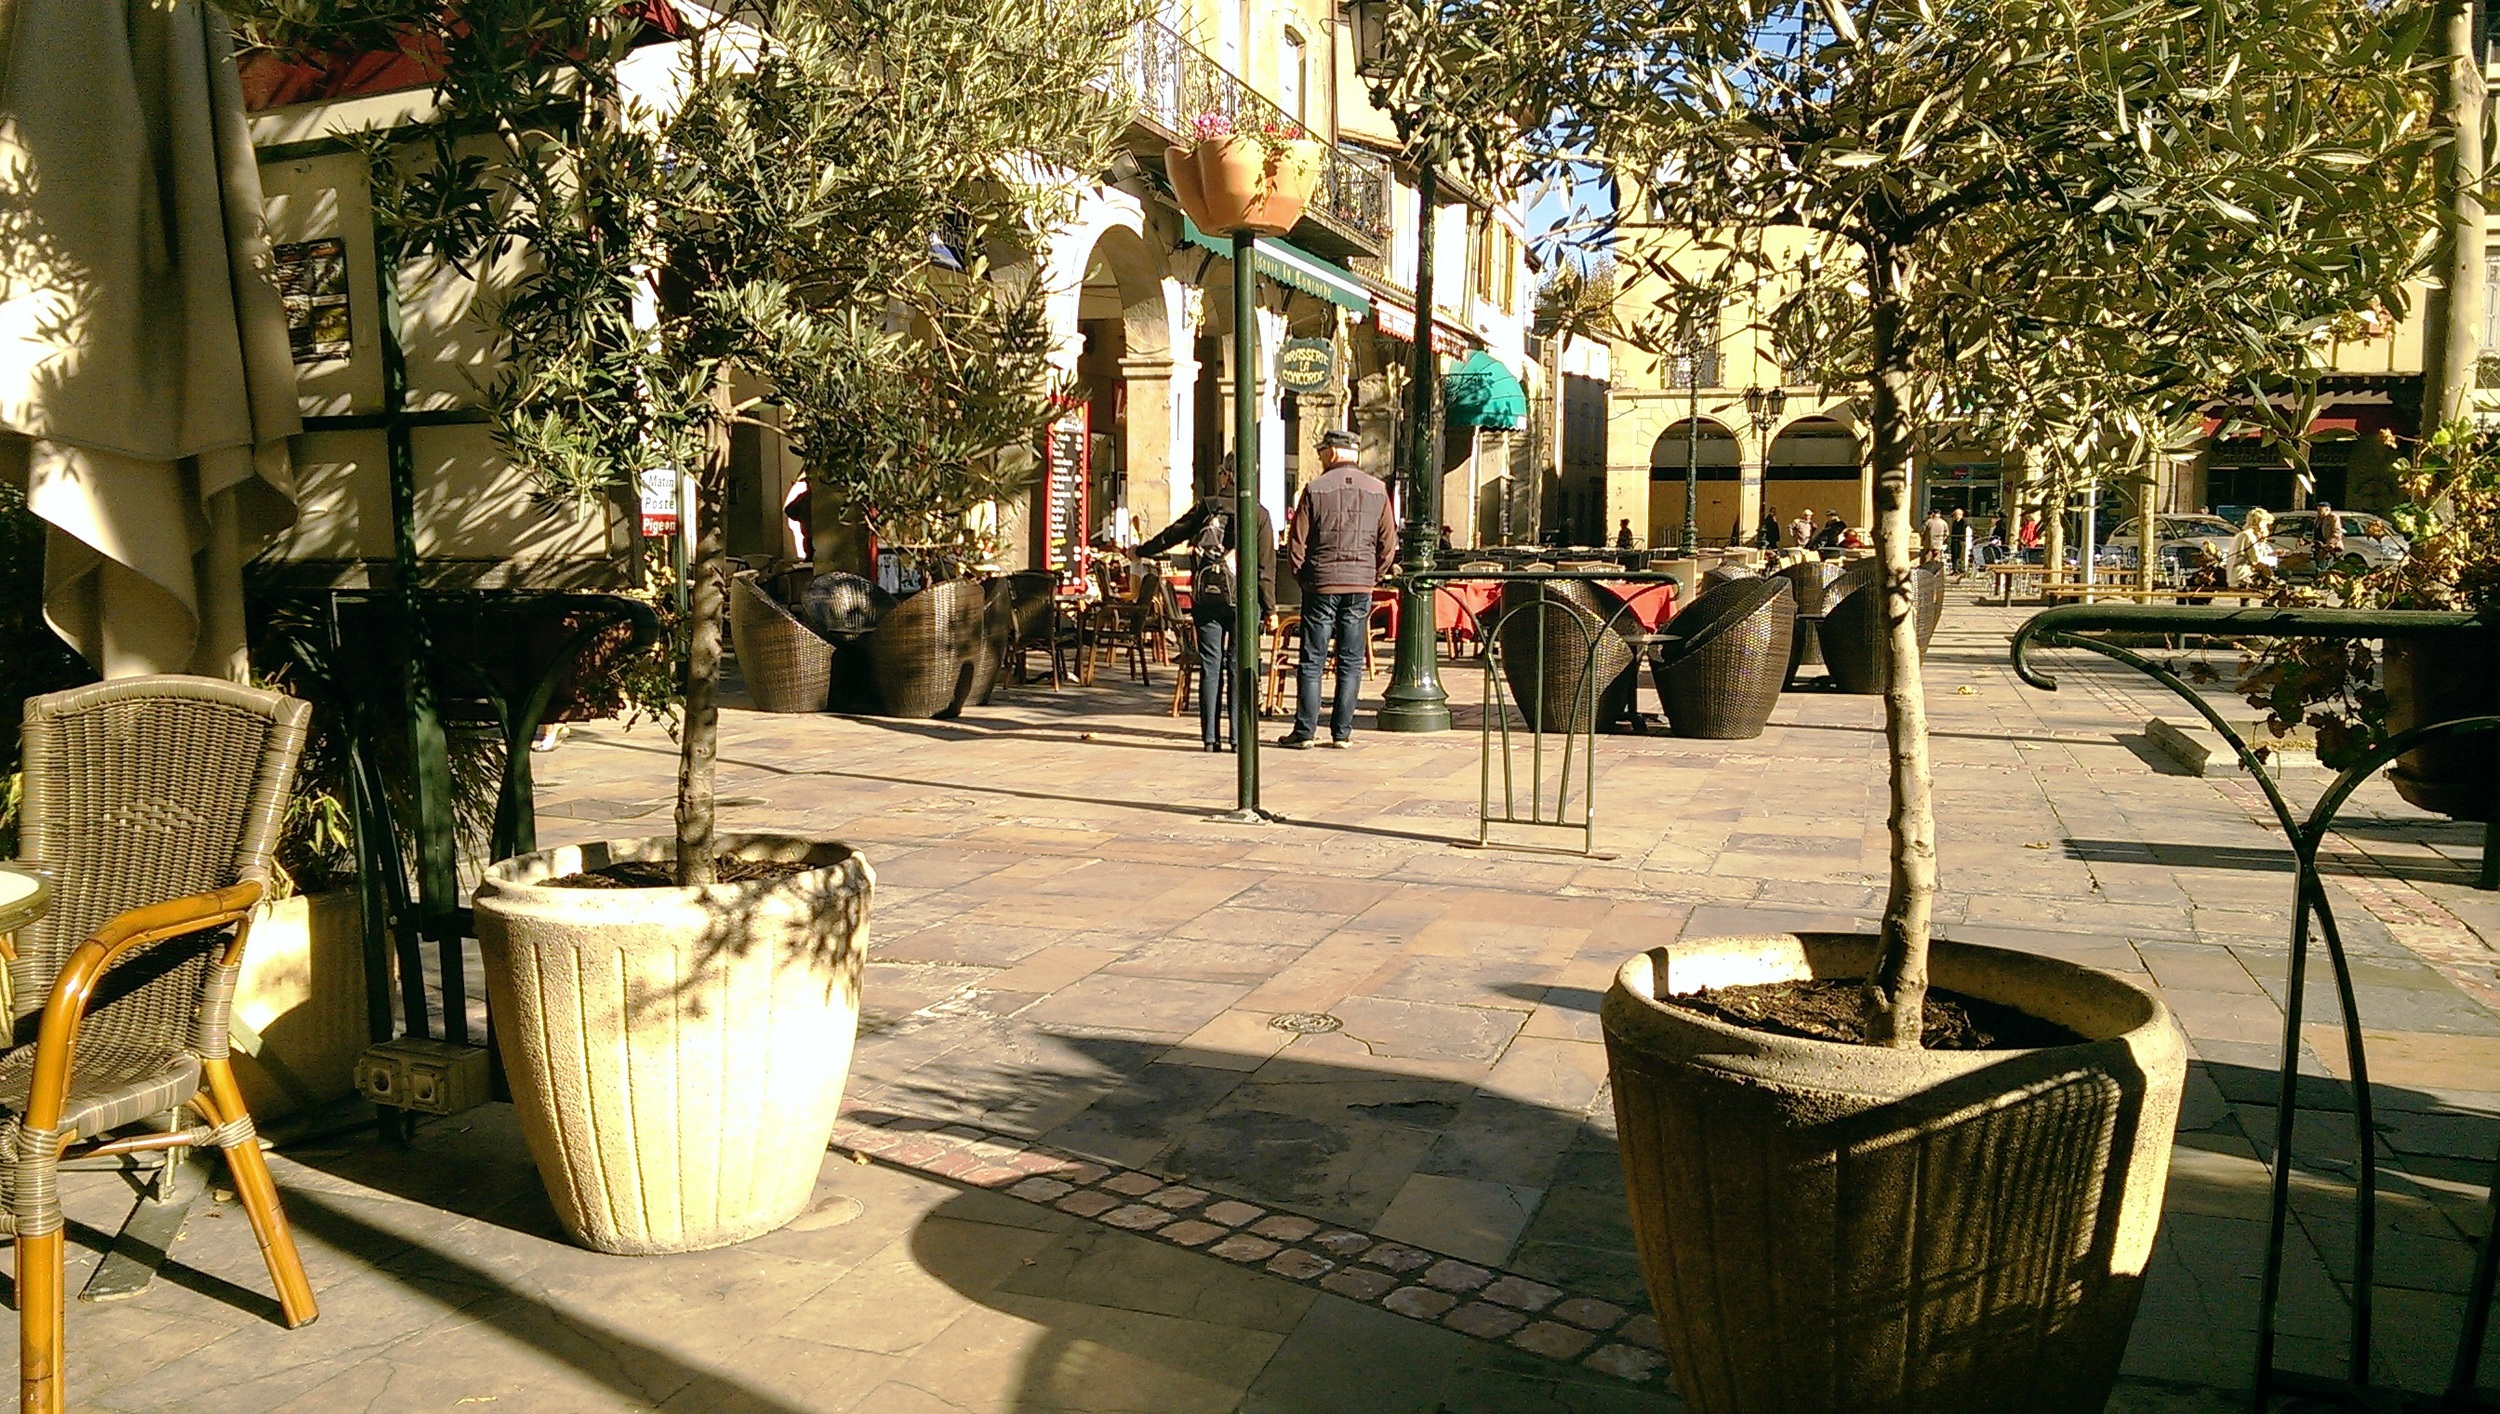 Place de la Republique seen from Le Grand Cafe, Limoux